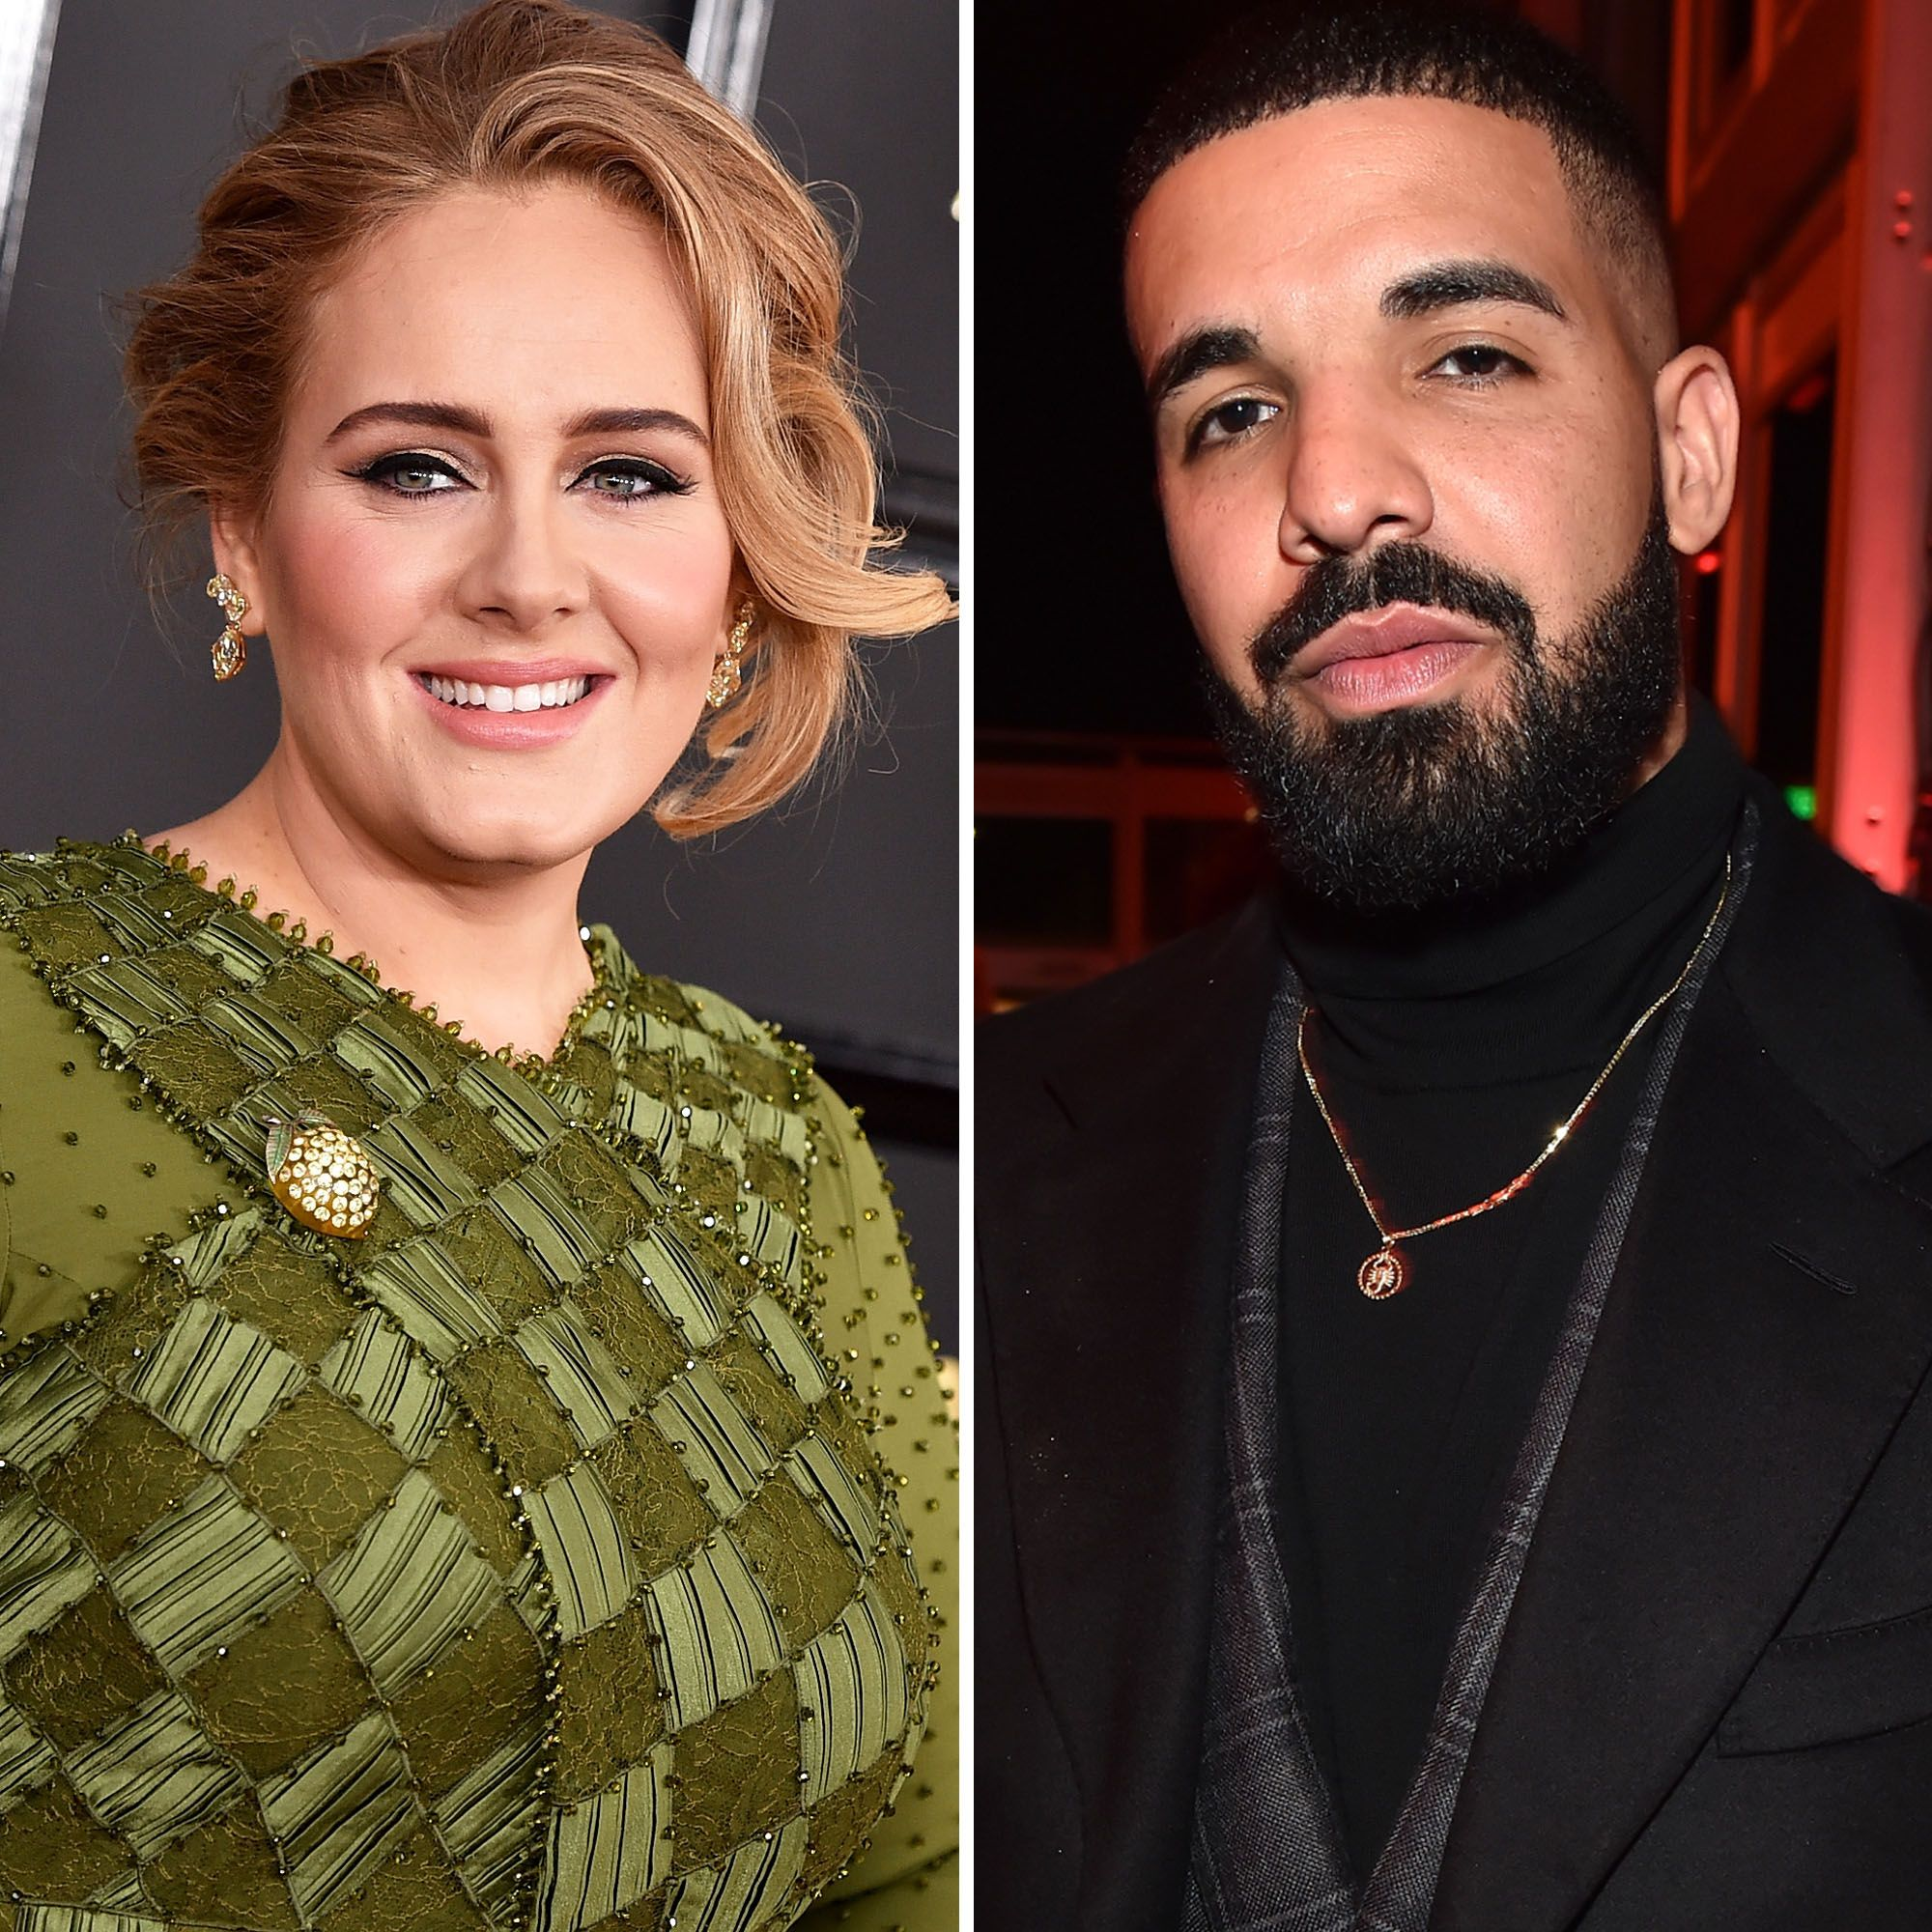 Drake And Adele Is The Celebrity Friendship We Didn't Know We Deserved